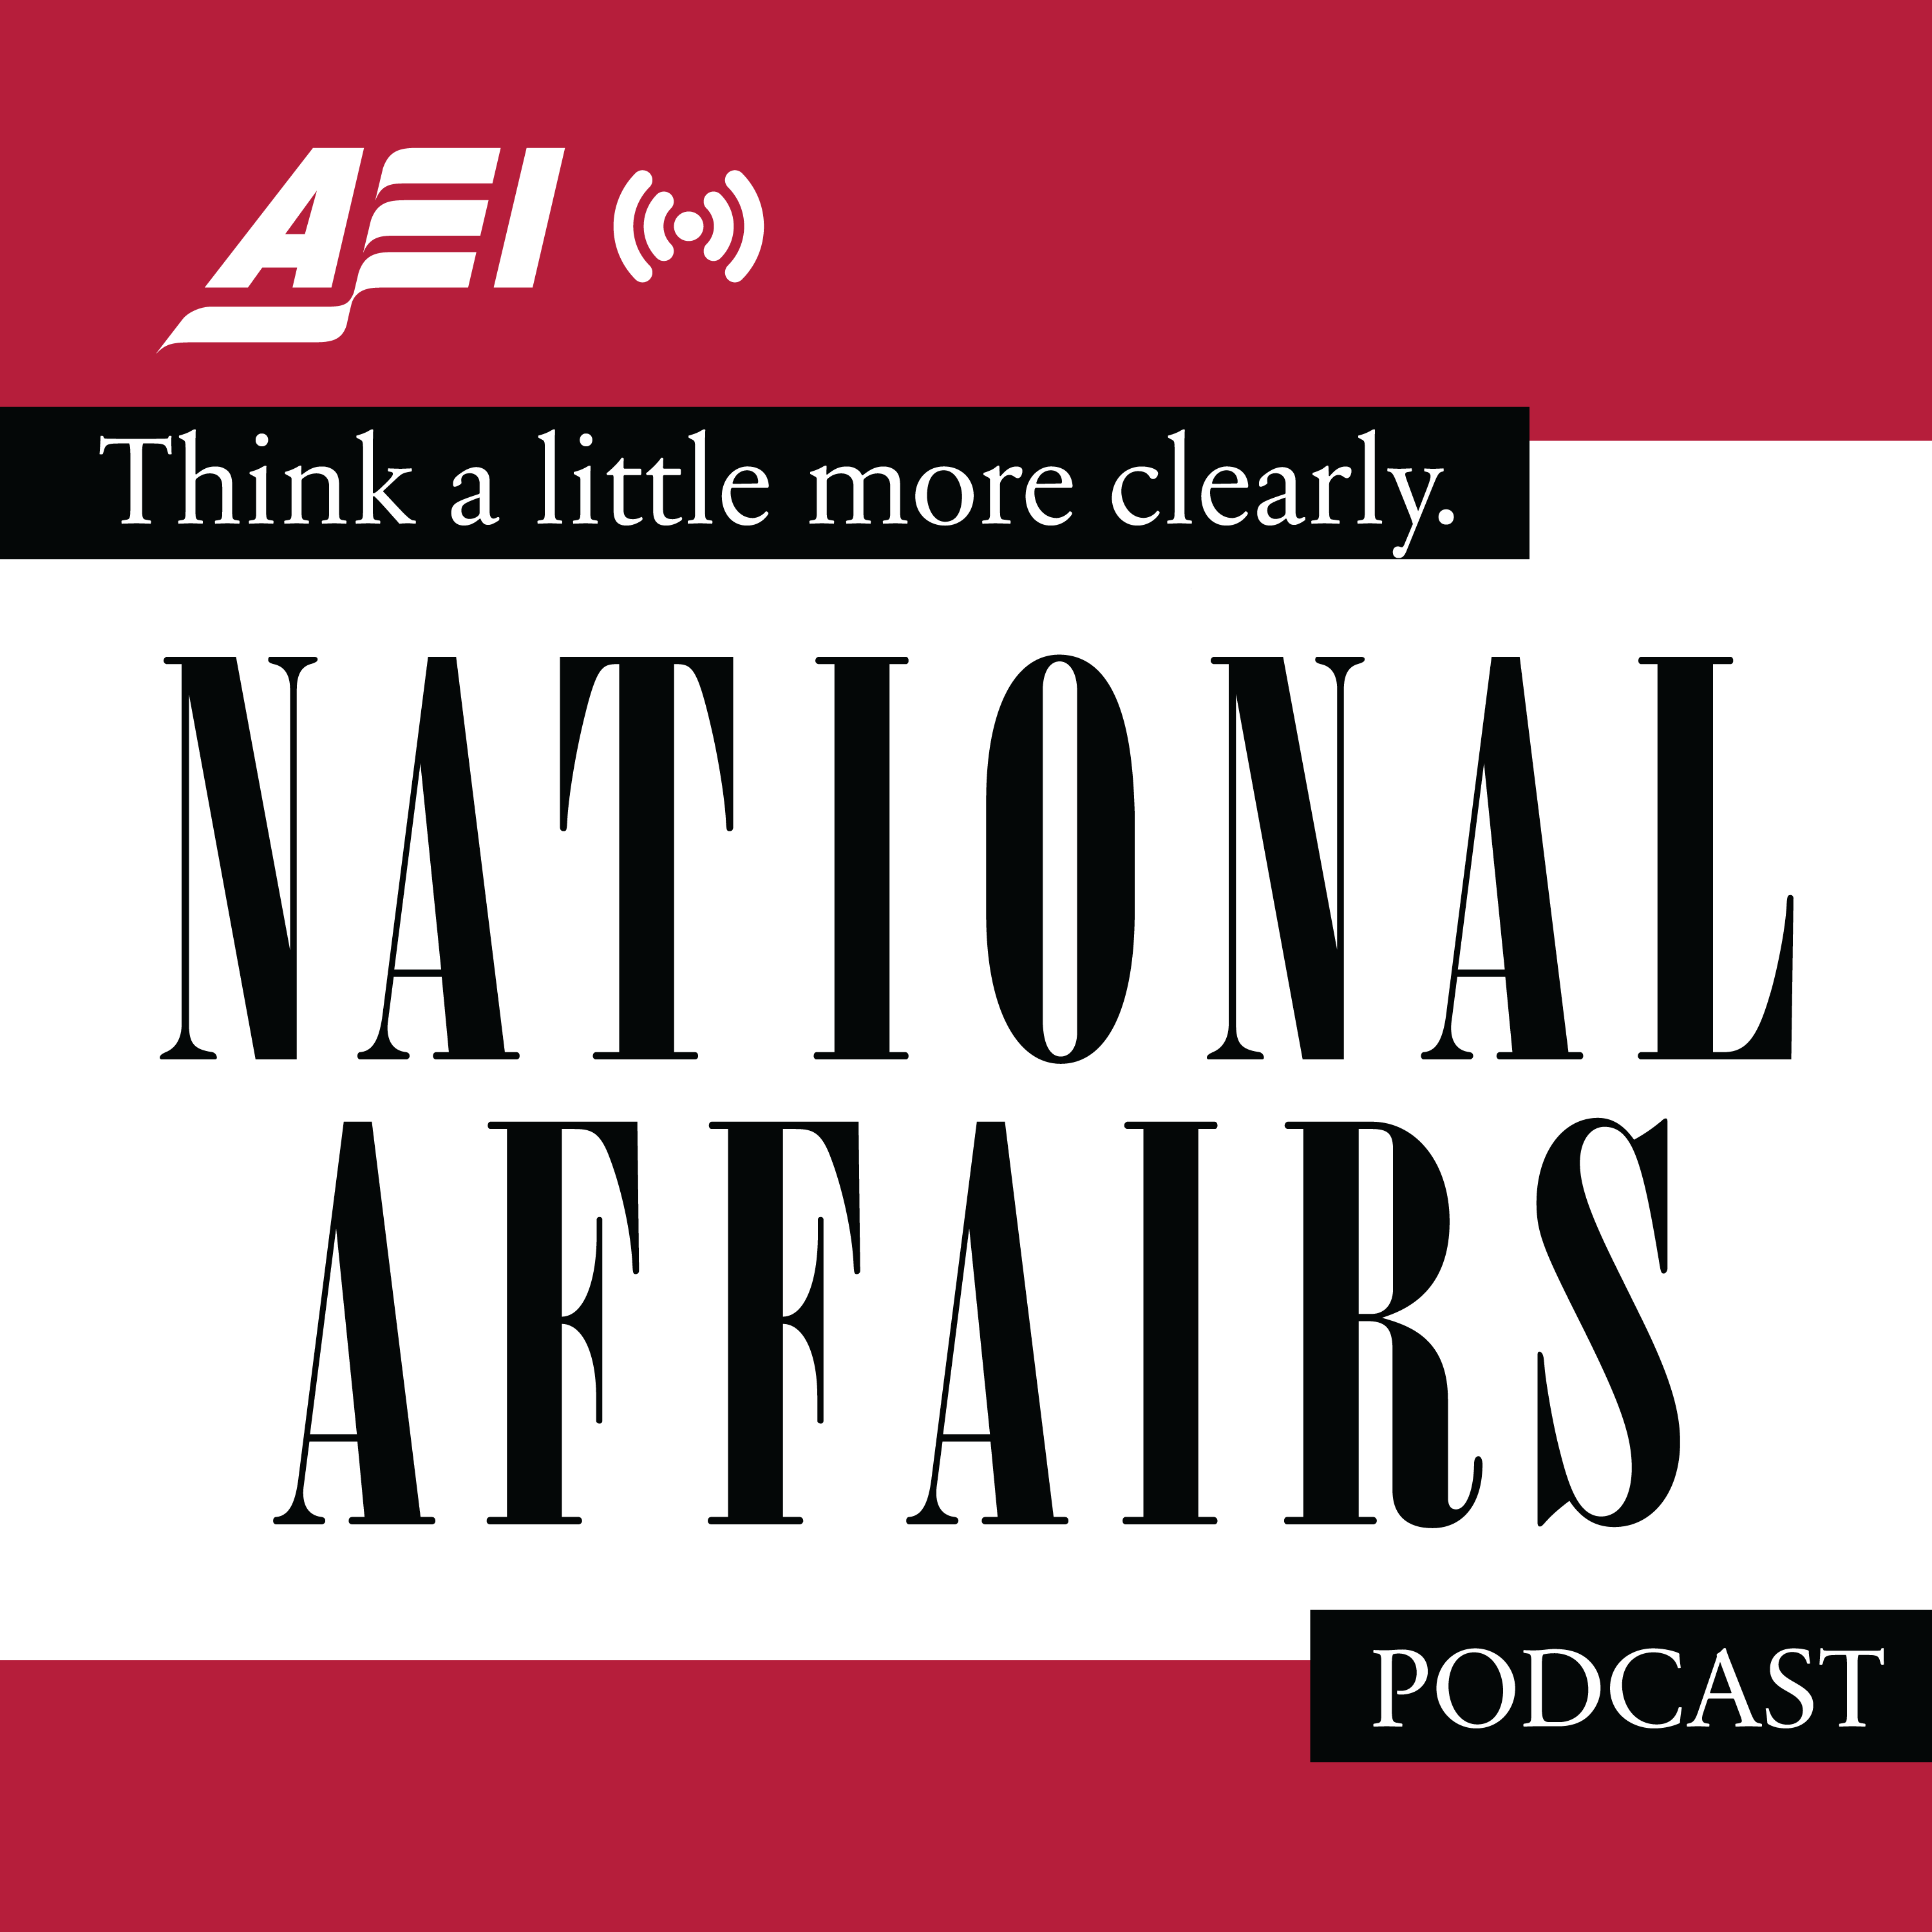 Artwork for podcast The National Affairs Podcast